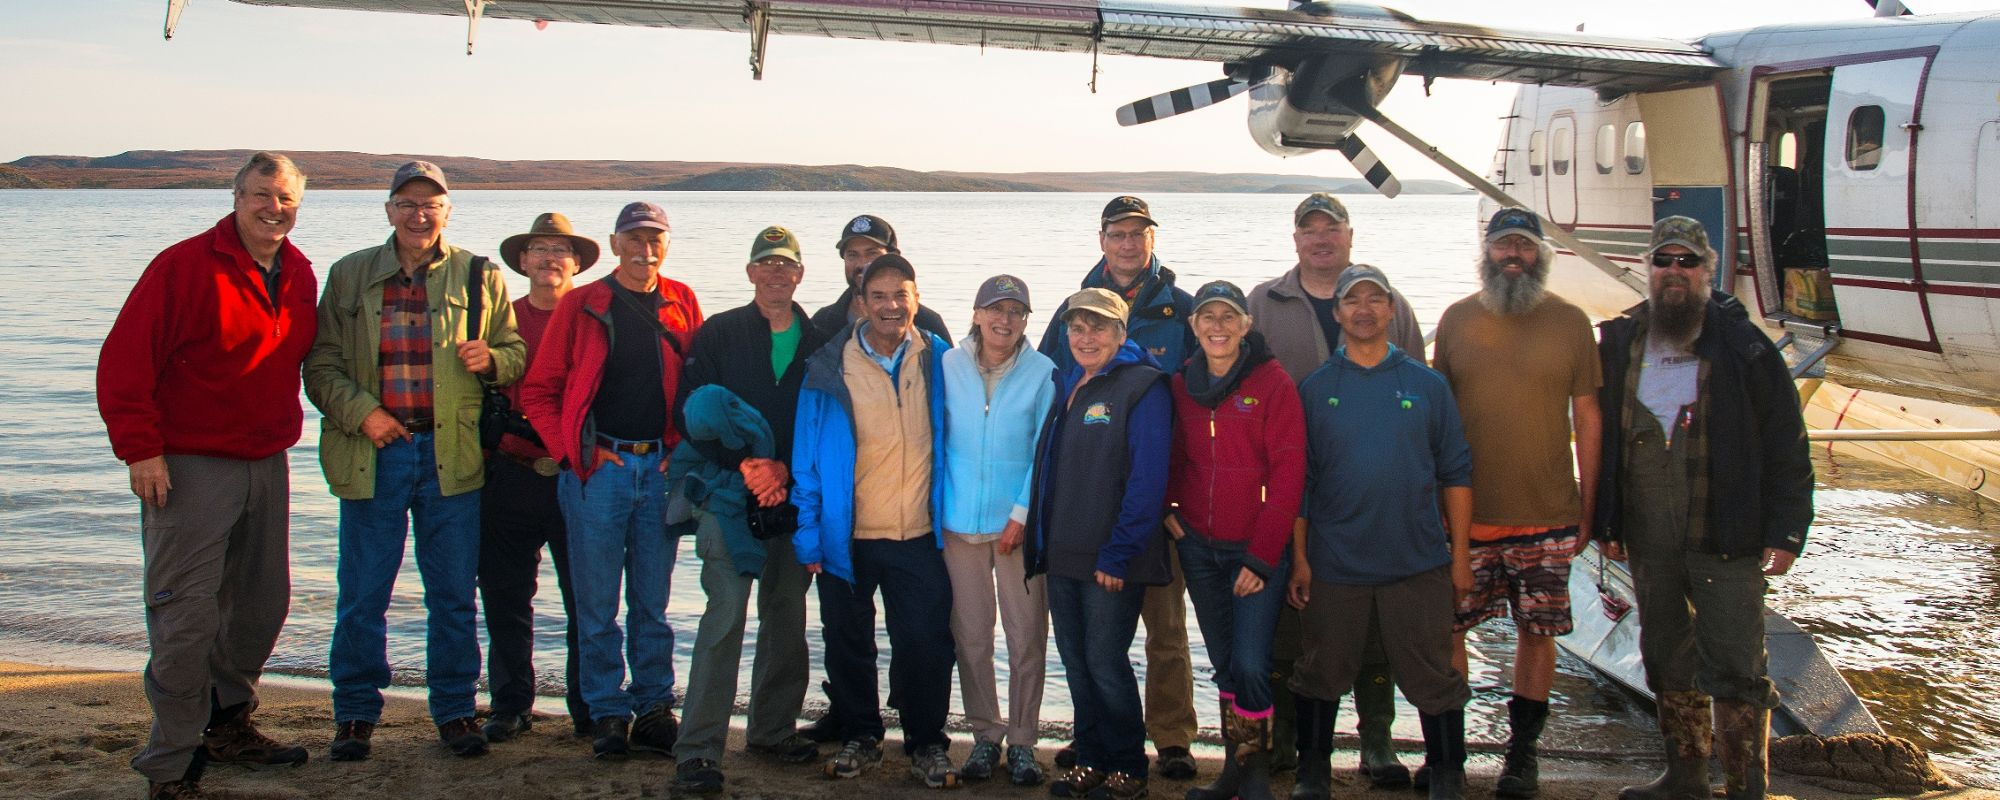 Group of People Standing on beach near float plane smiling